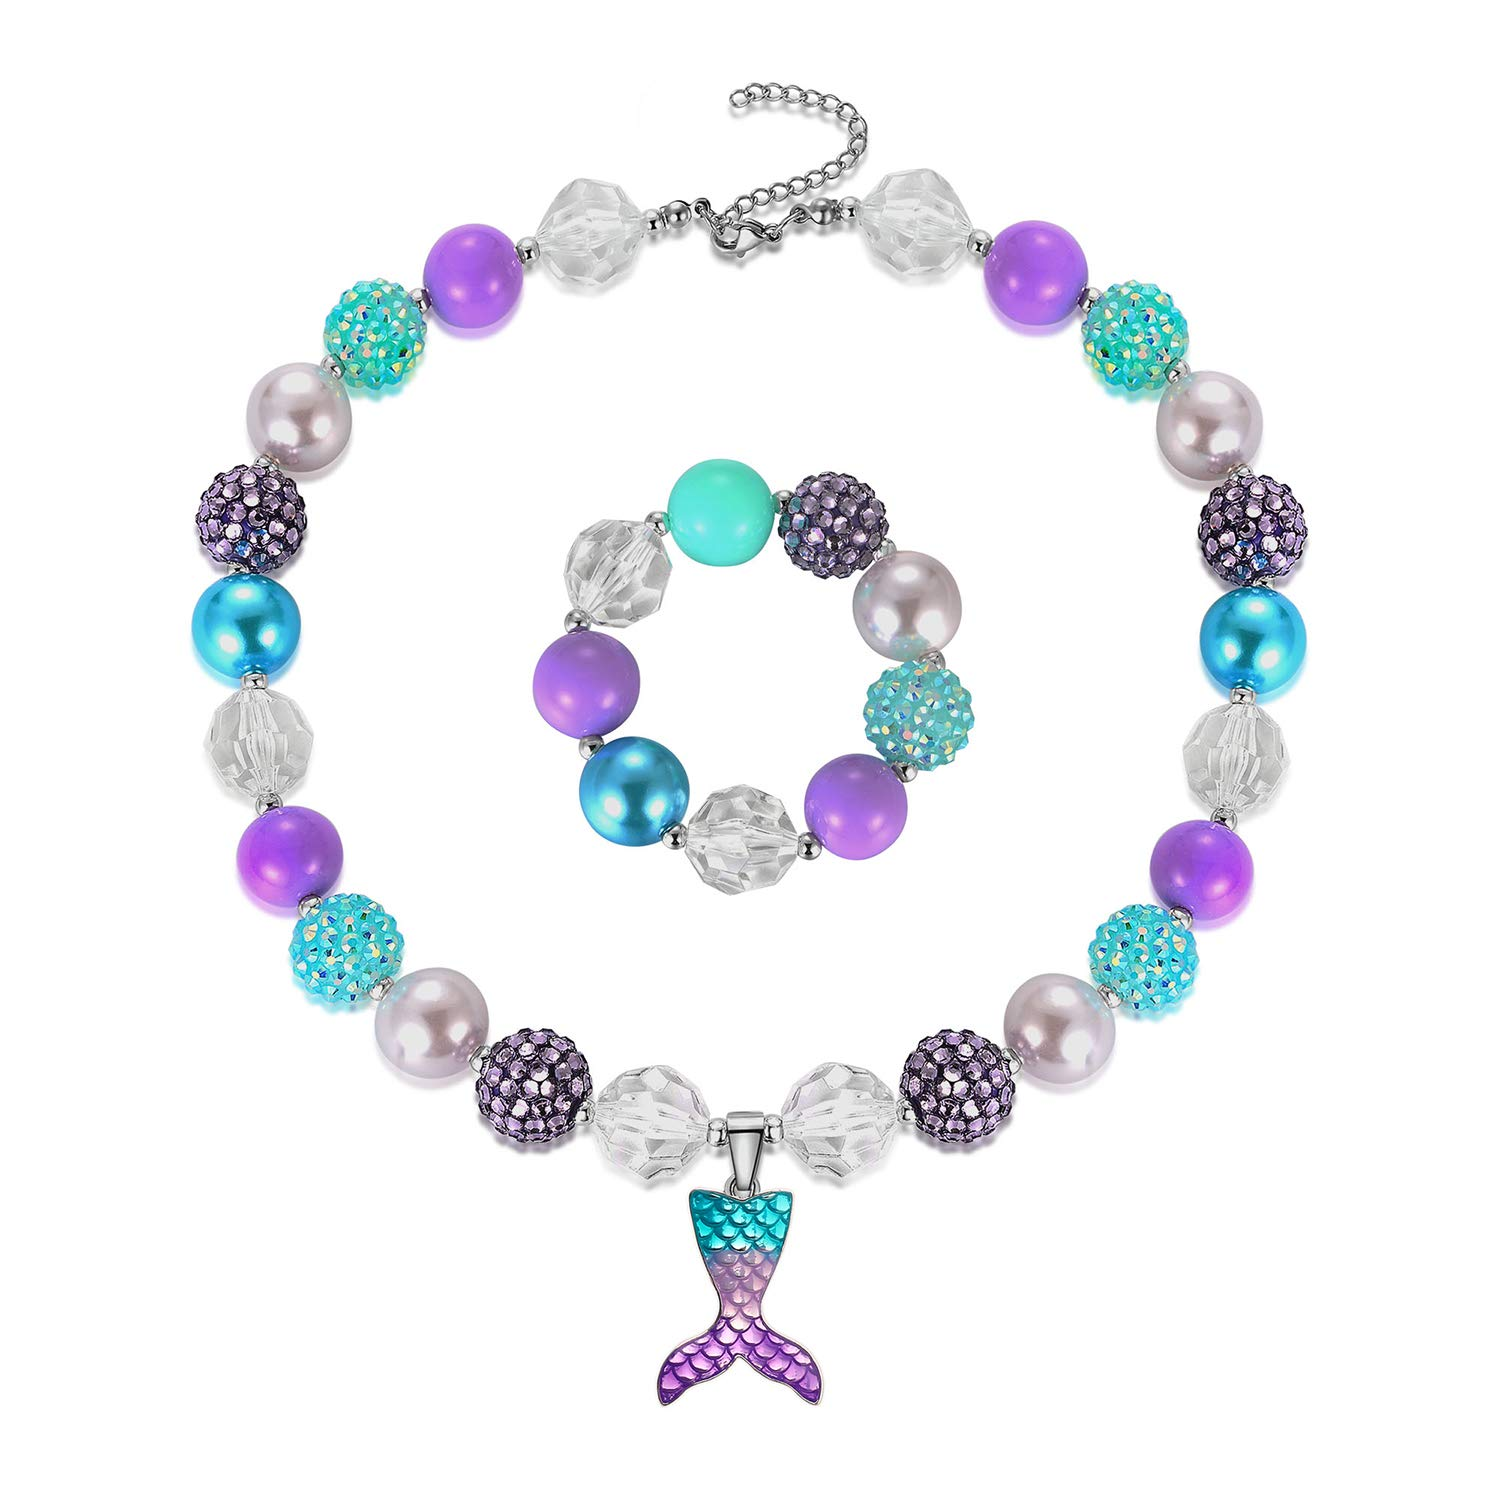 Mermaid Pendant Necklace Bubblegum Toddler Sparkly Bead Bracelet Jewelry Set For Kids First Birthday Gifts